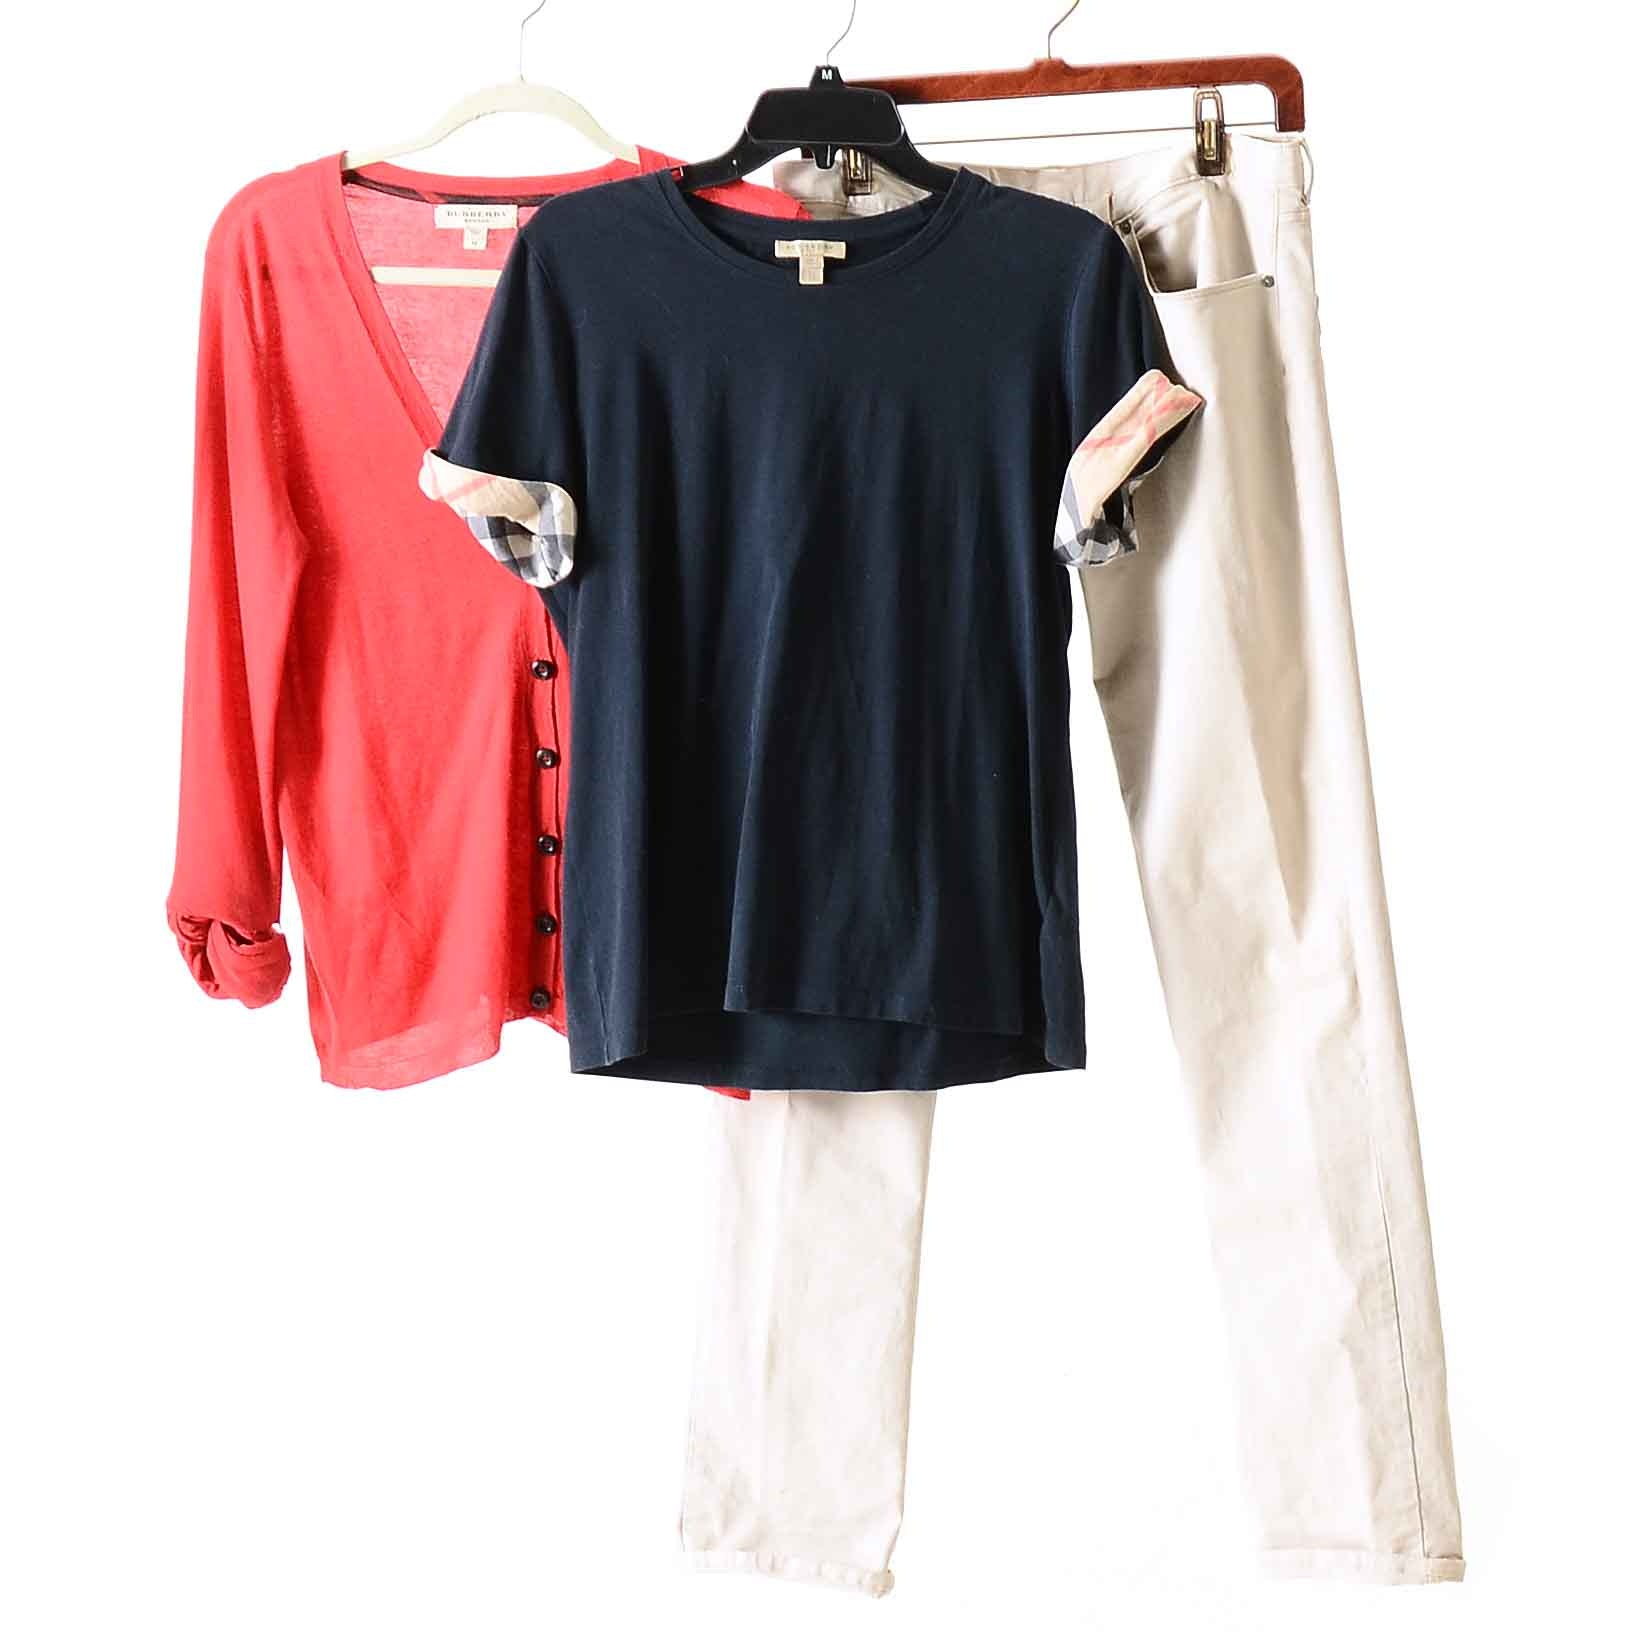 Collection of Women's Burberry Clothing